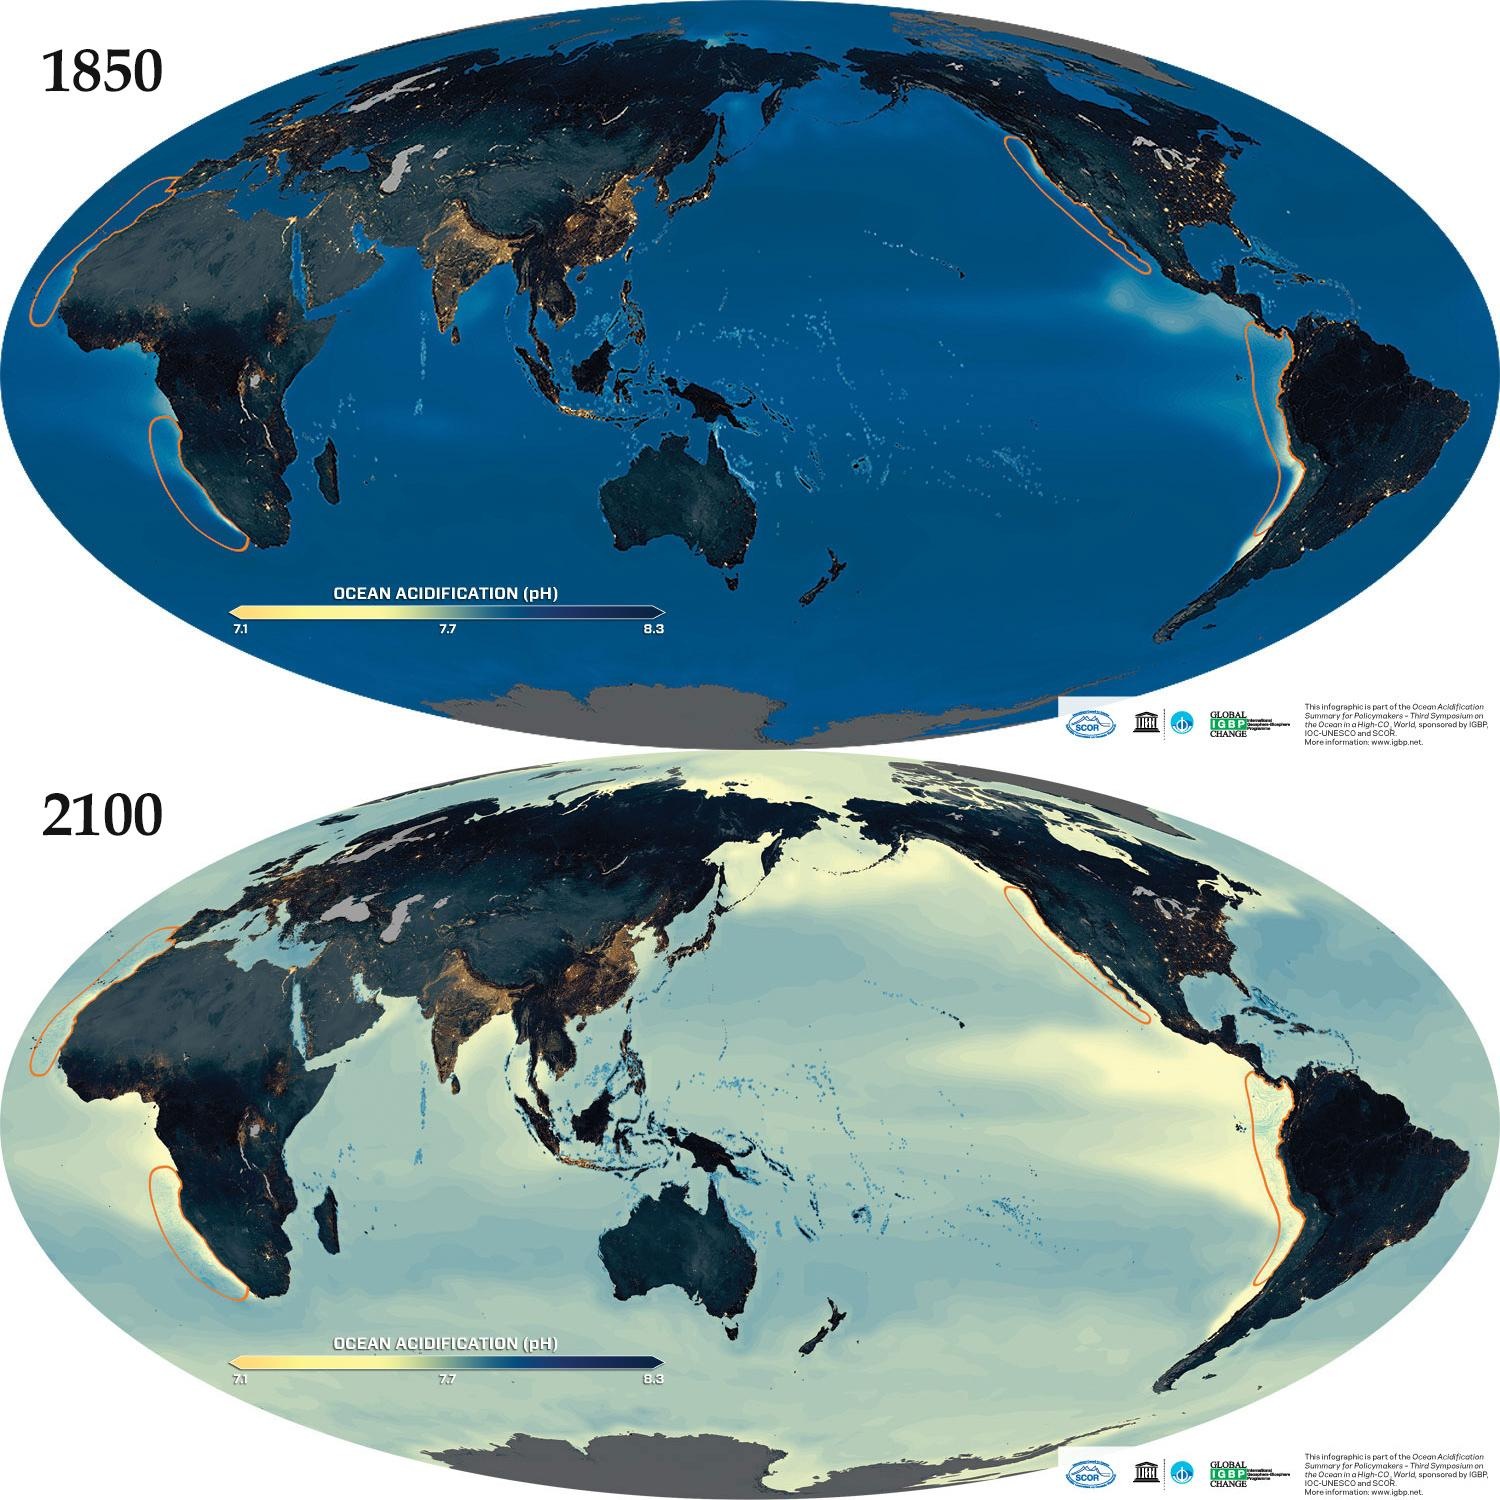 Average pH of surface waters in 1850 and 2100